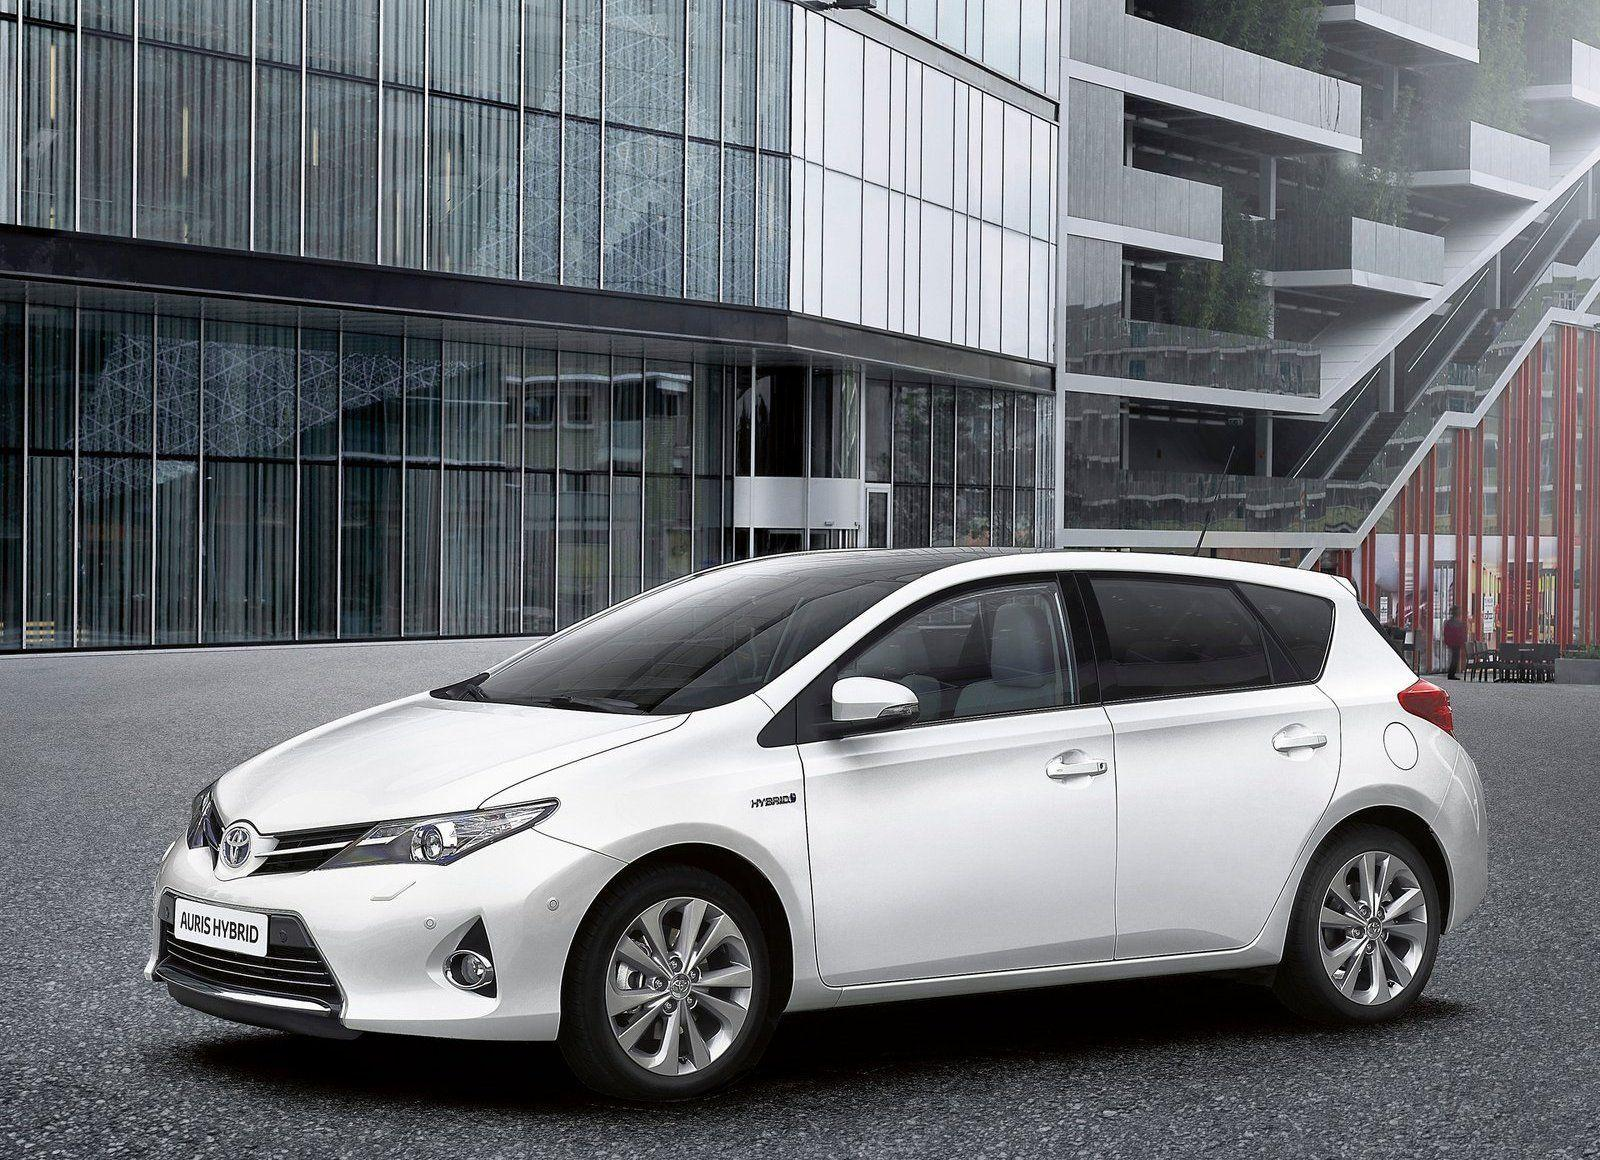 Free Download Wallpapers 2013 Toyota Auris Walpaper Download free